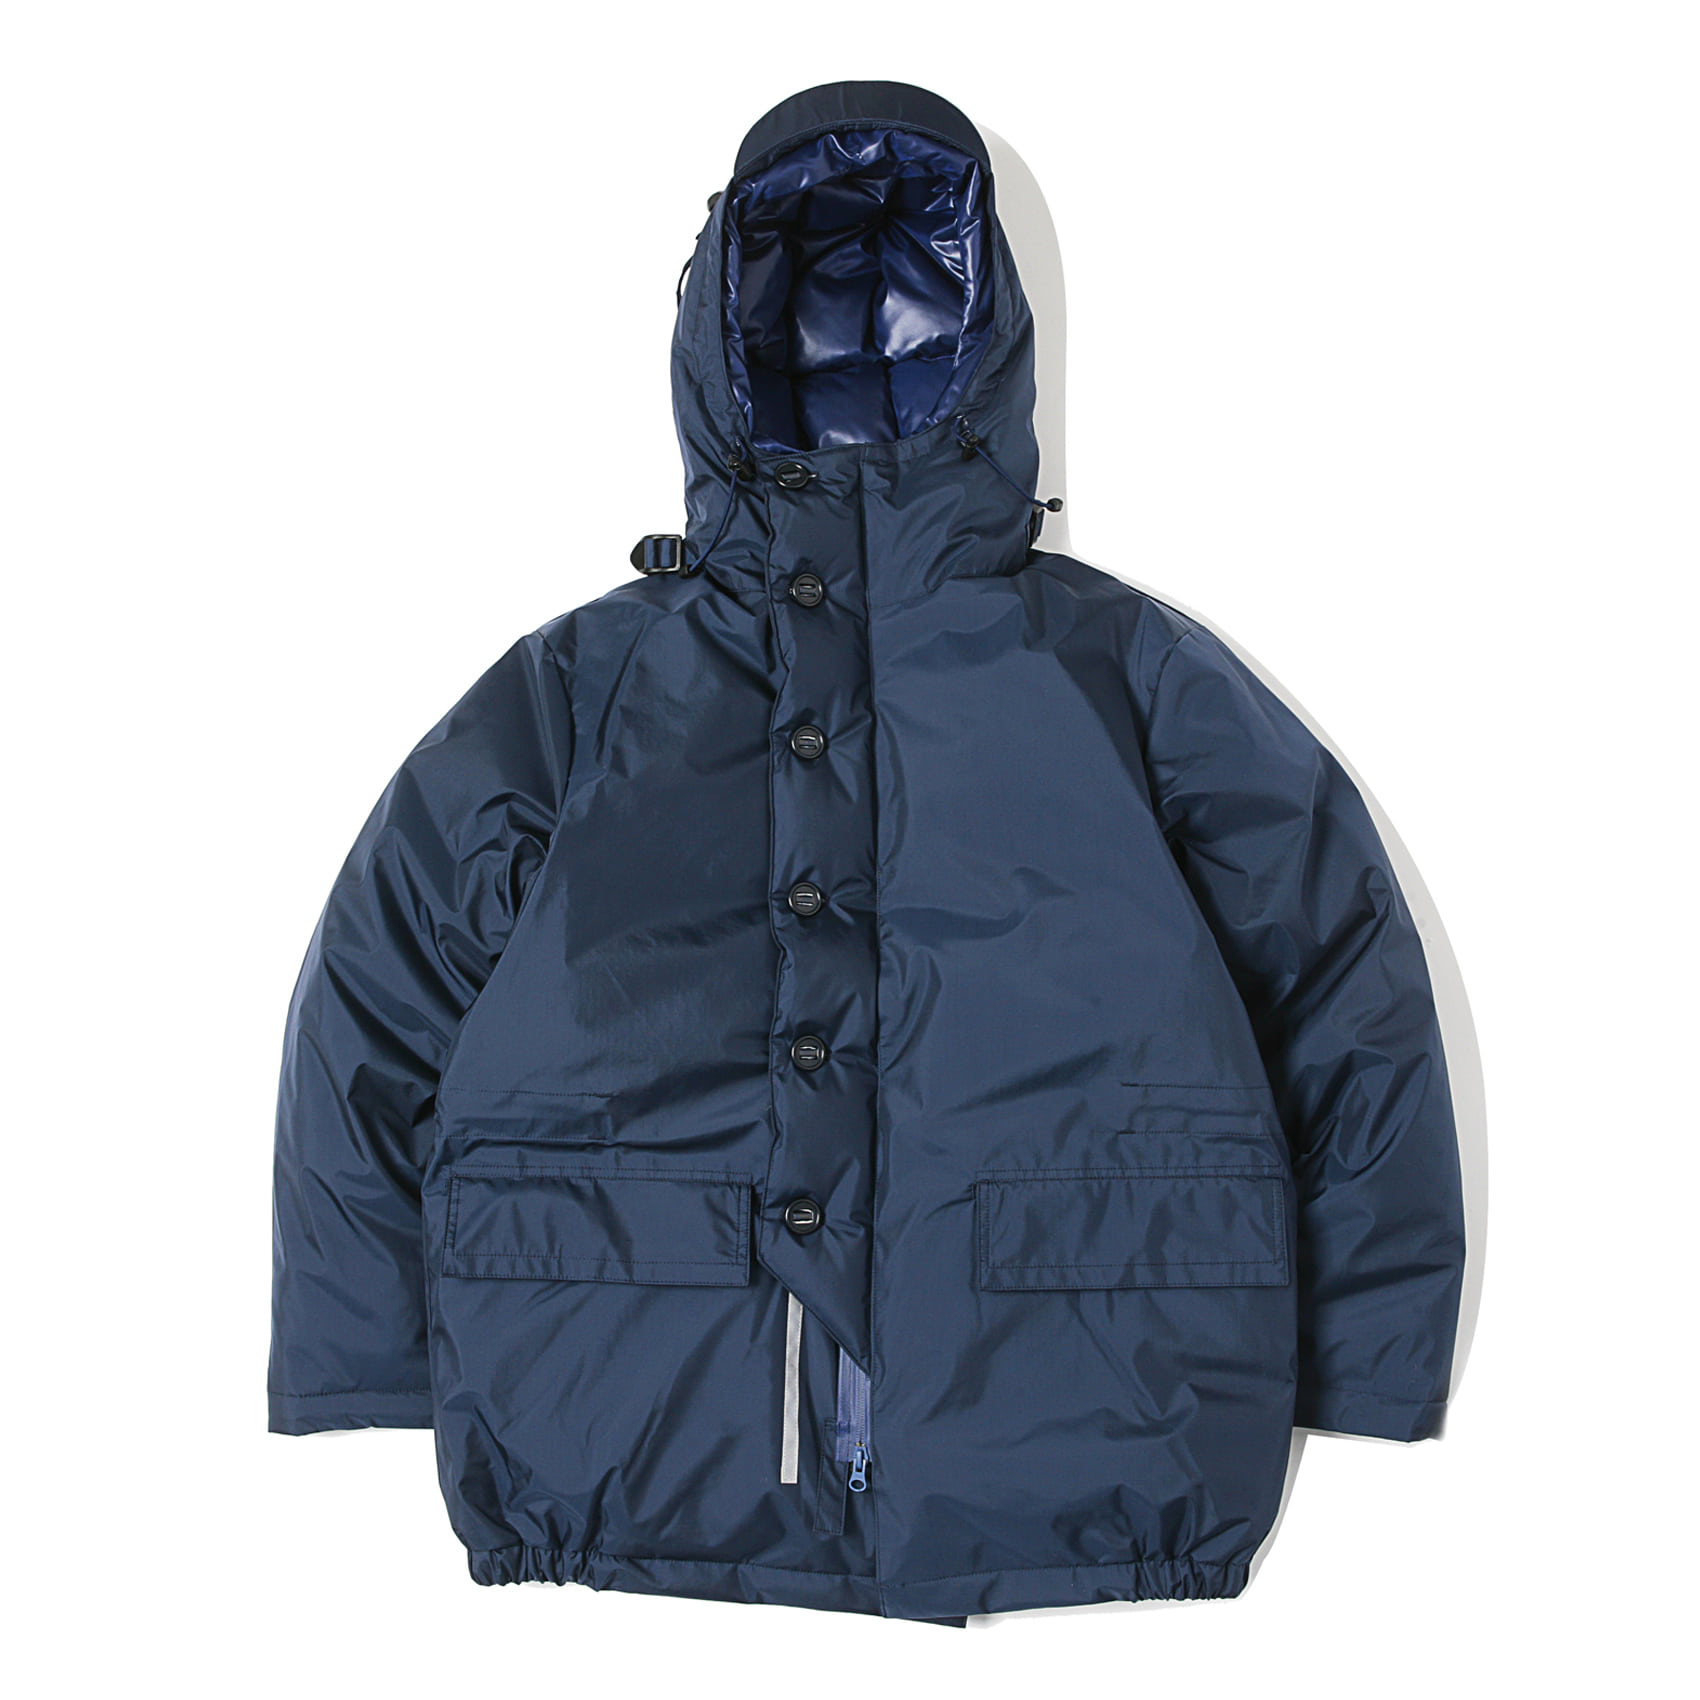 ARKTIKAL DOWN JACKET - NAVY